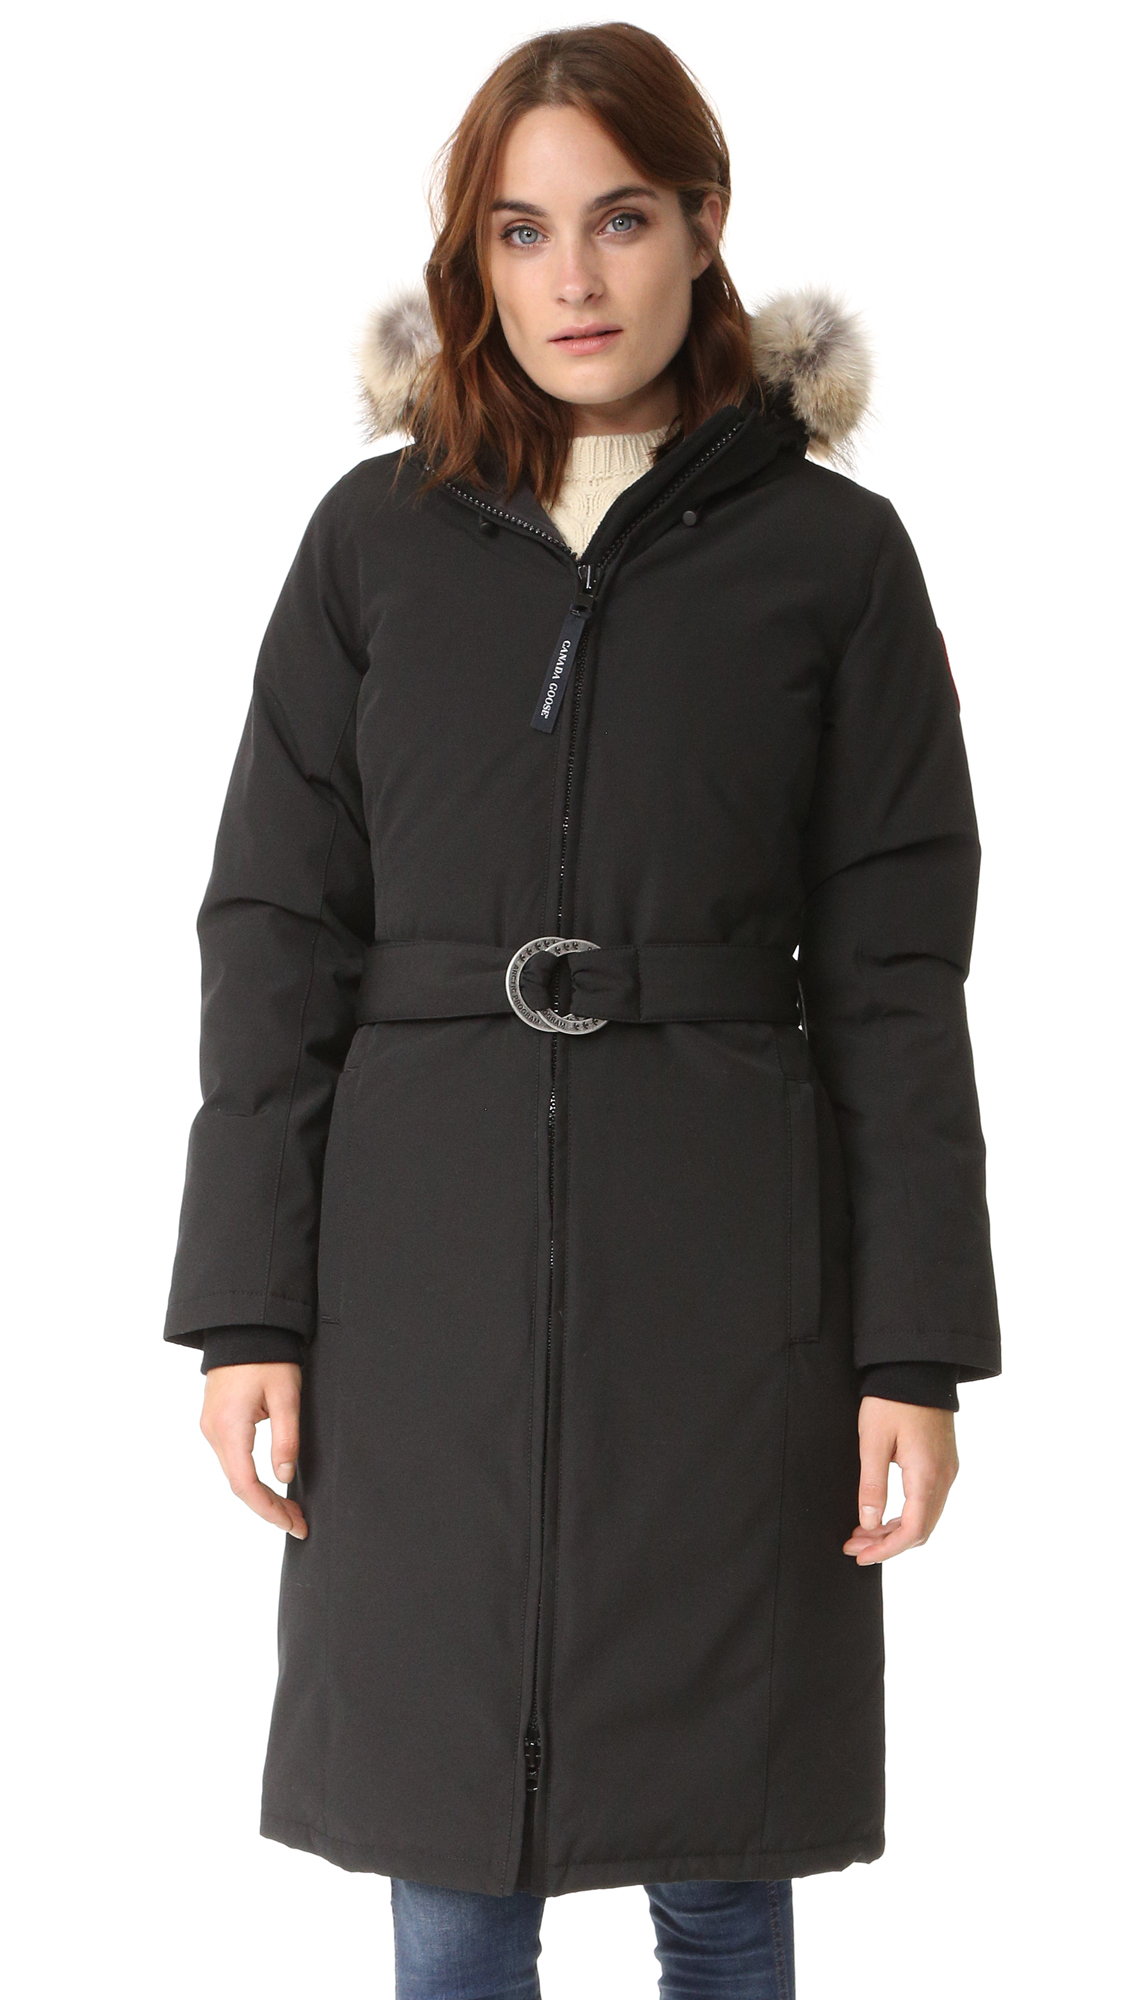 Find the latest selection of Cheap Canada Goose Clearance Outlet jackets, parkas, vests, beanies sale and more. fabulousdown4allb7.cf is a proud retailer of Canada Goose Clearance Outerwear. Enjoy Free Shipping on all Canada Goose Outlet Jackets and Parkas.